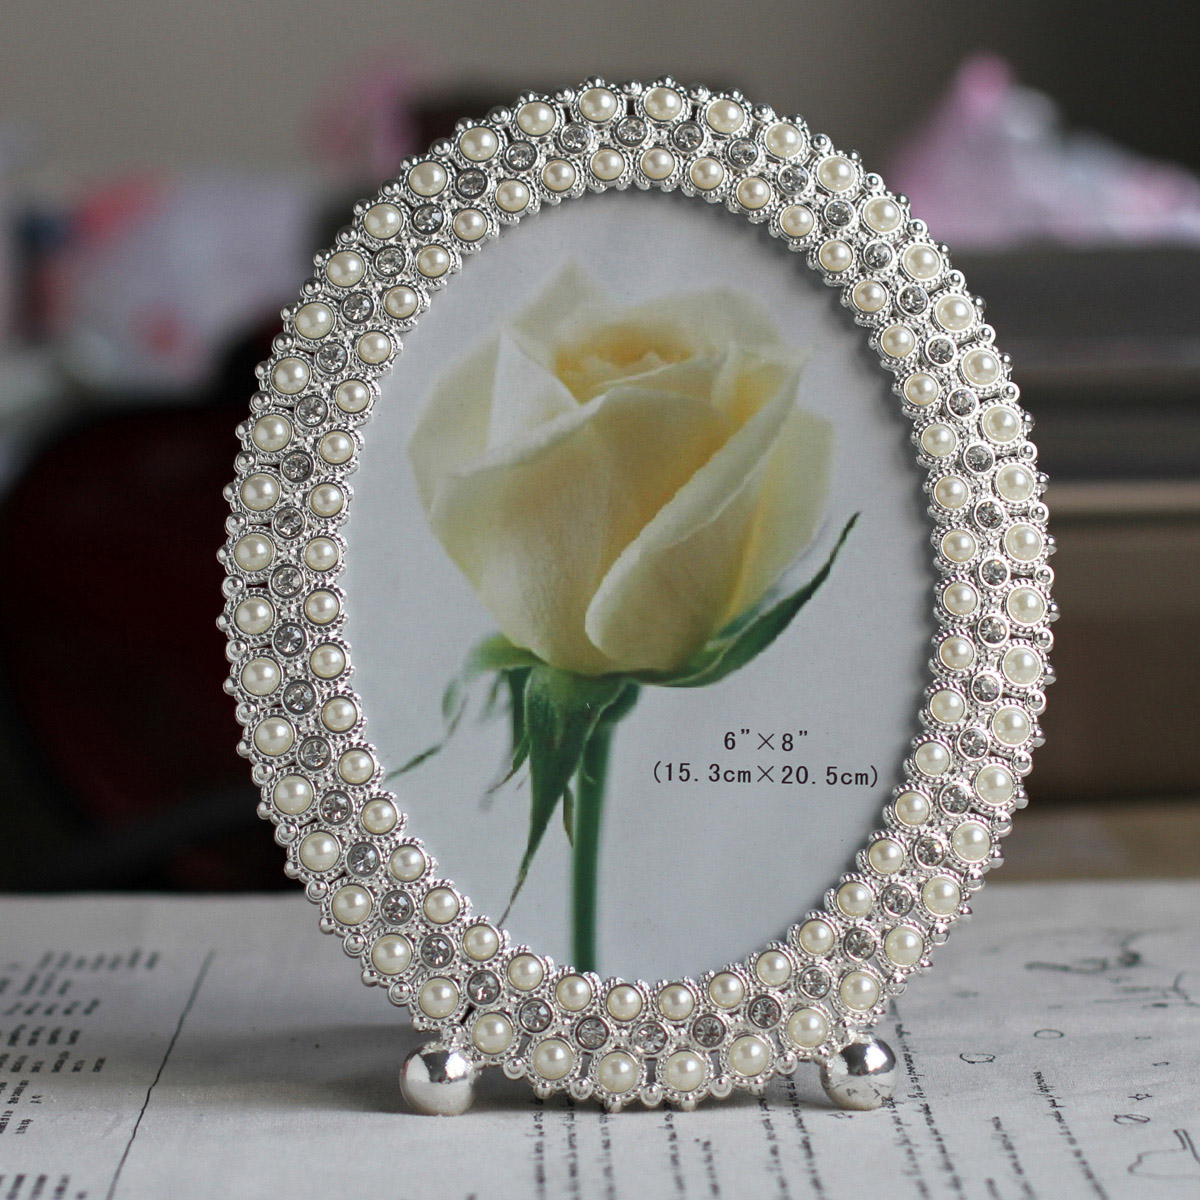 6 inch 7 inch 8 inch 10 inch metal frame diamond pearl swing sets wedding gift studio photo frame x42